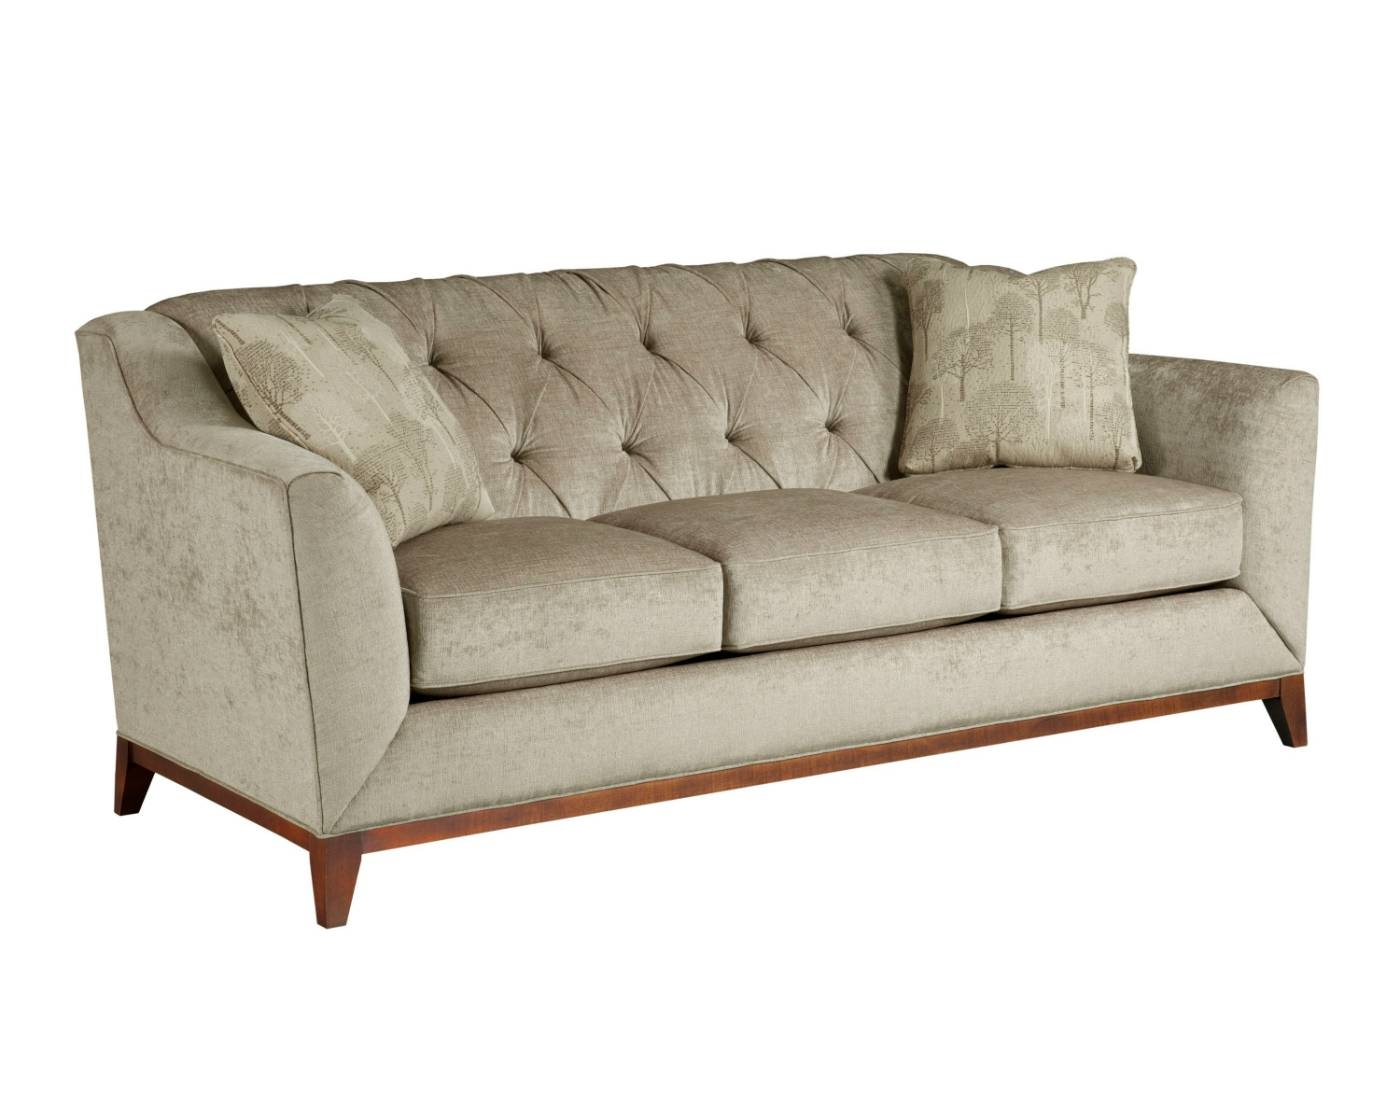 Gabrielle Sofa - Chambers Furniture inside Broyhill Sofas (Image 14 of 15)